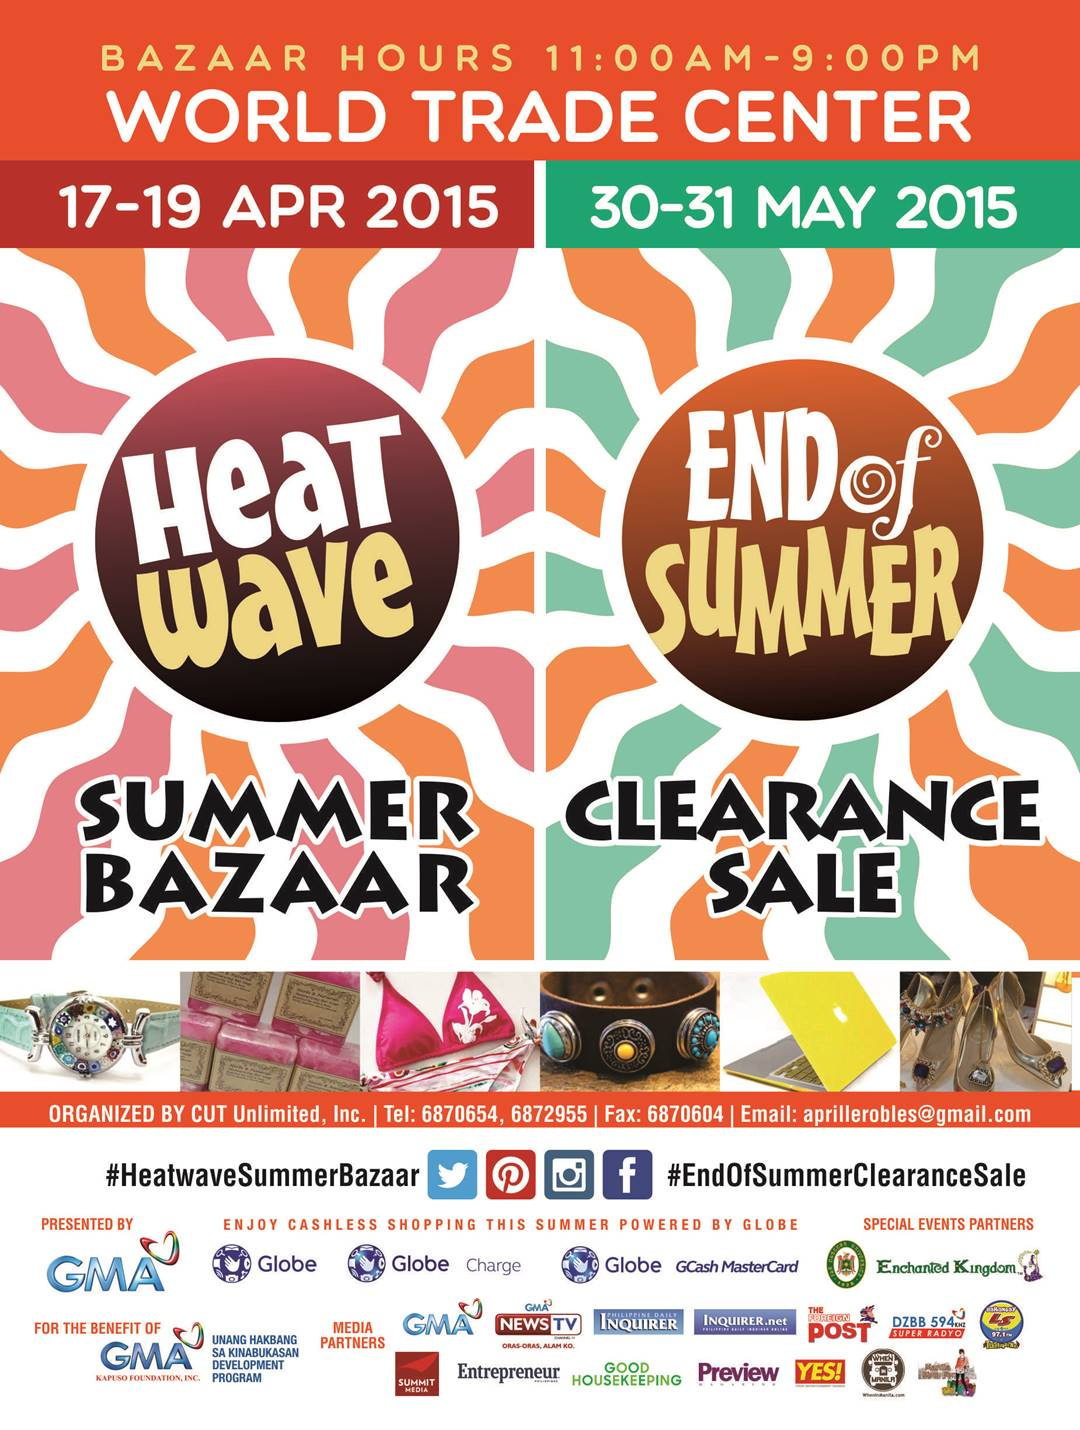 Heat Wave Summer Bazaar @ World Trade Center April & May 2015